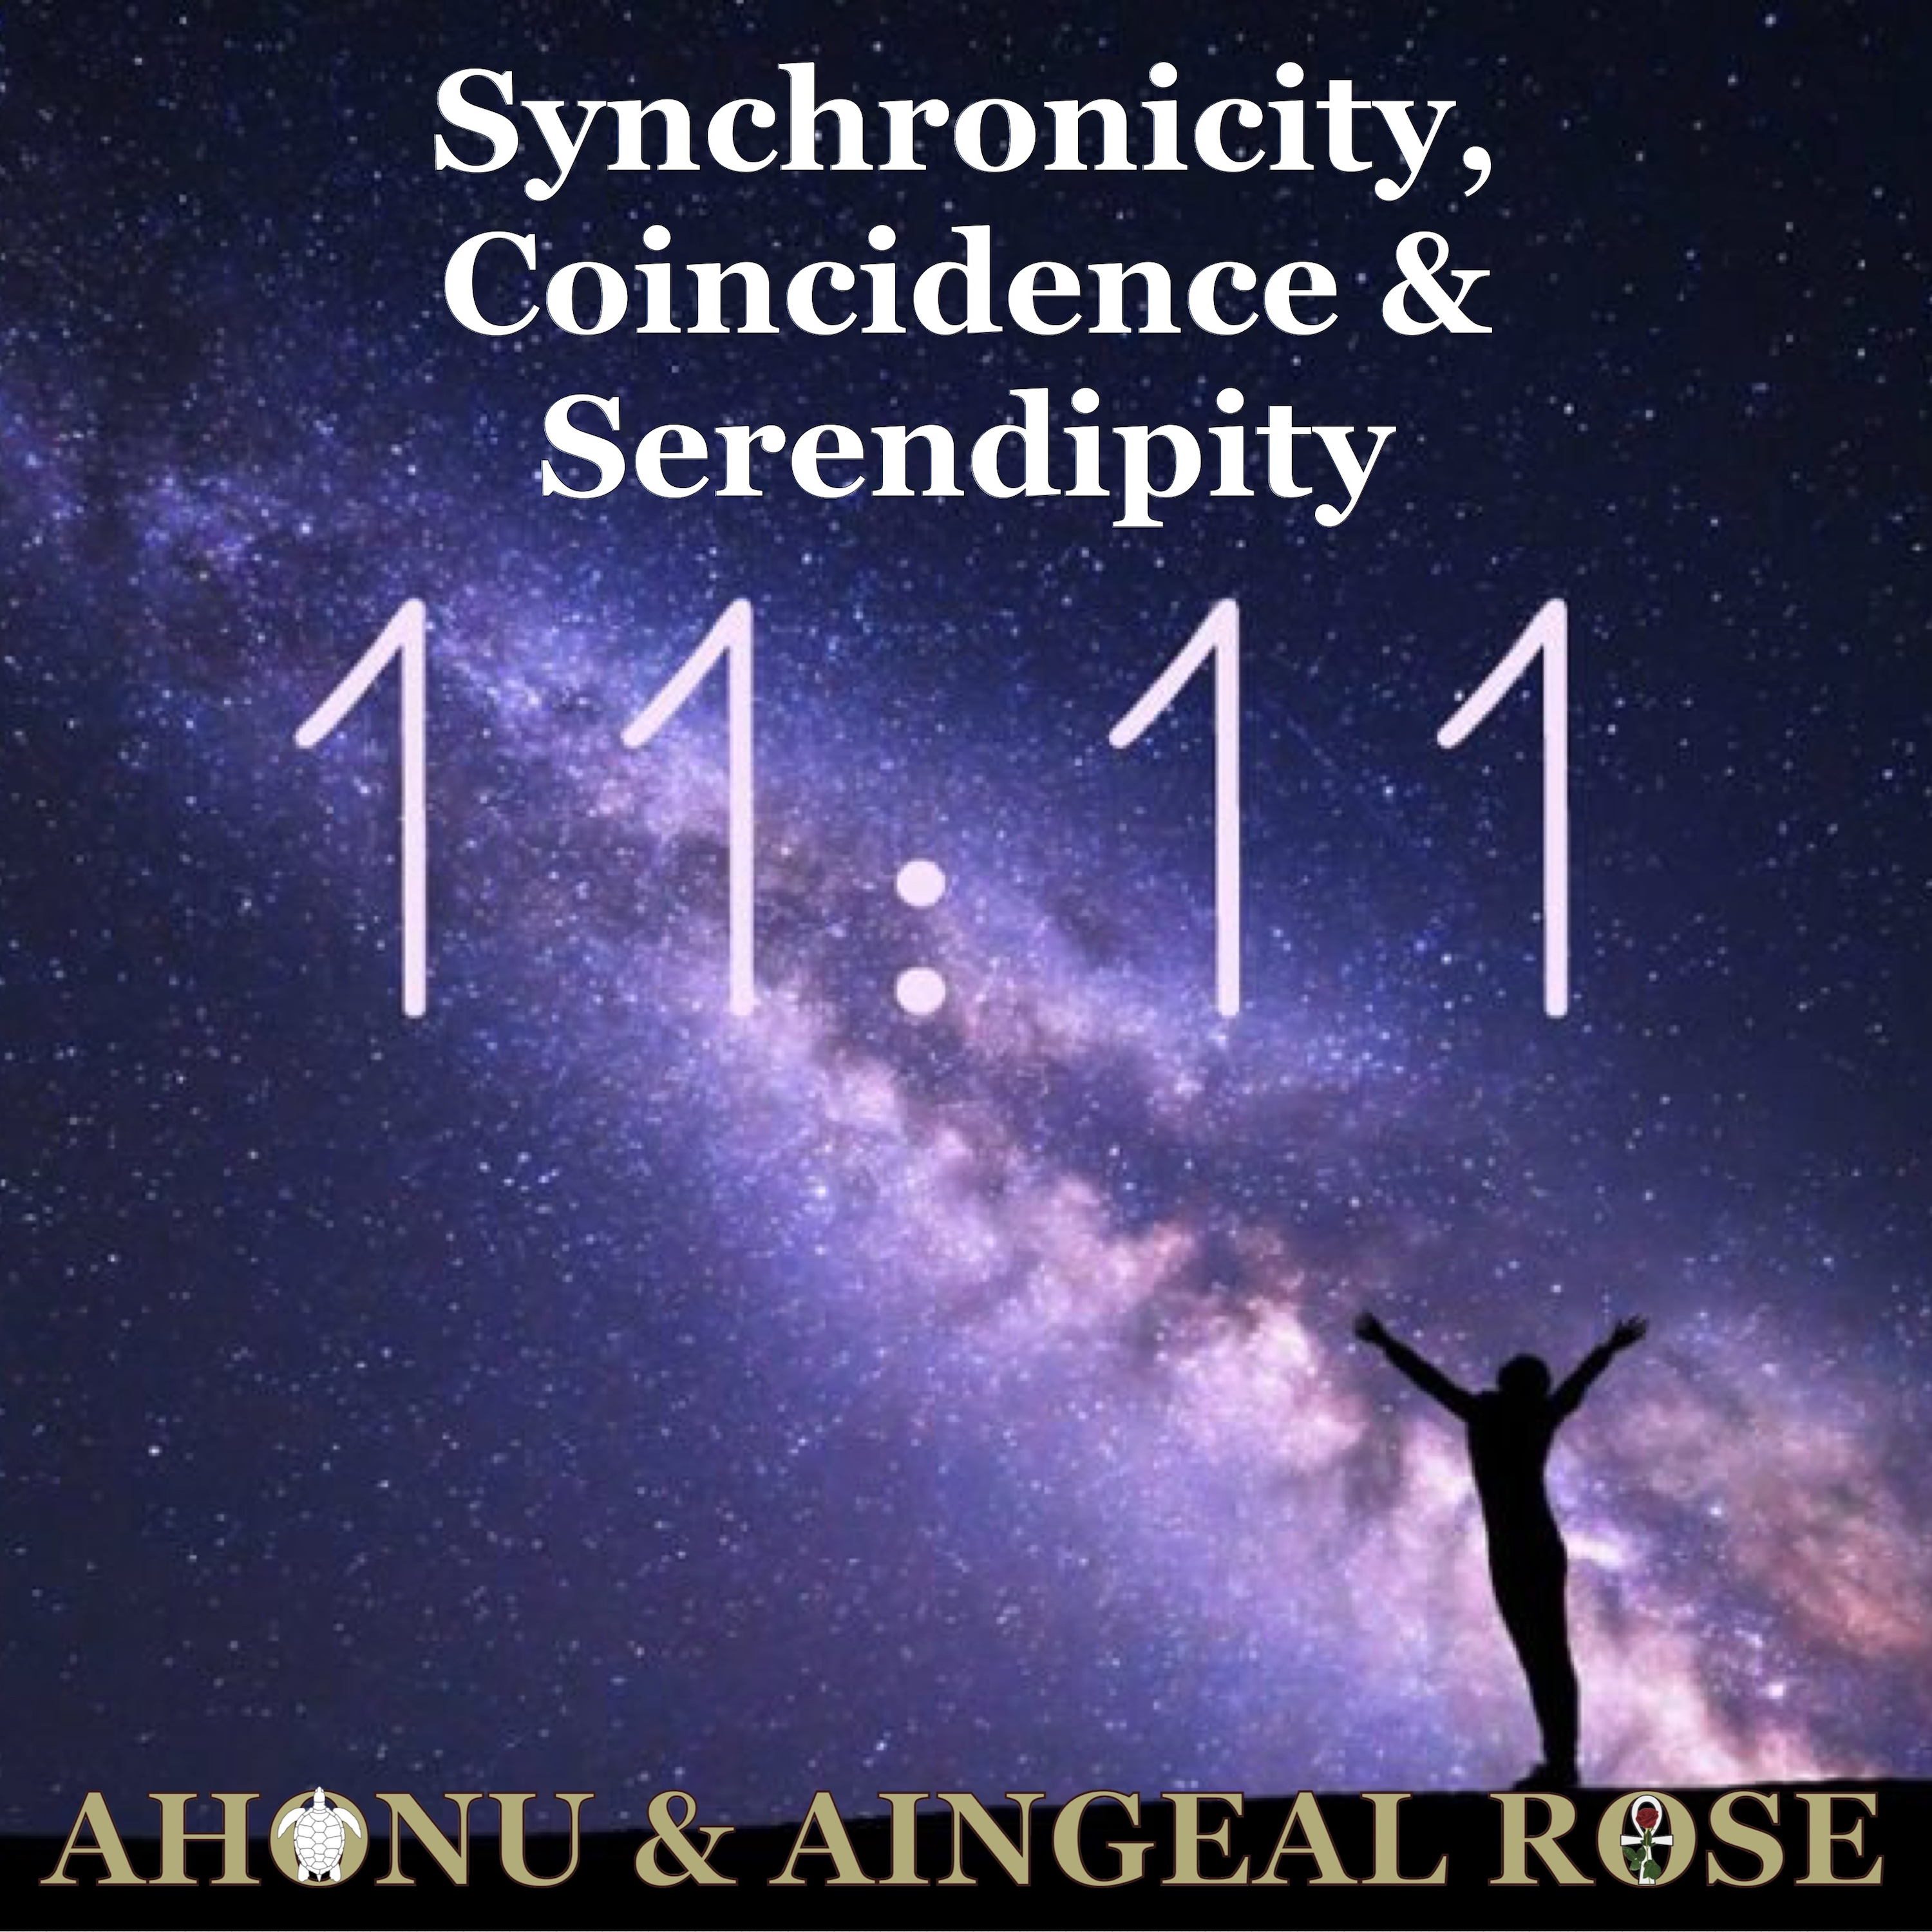 Aingeal Rose & Ahonu on The Honest-to-God Series announcing the 1st print book in the 100-book Answers From The Akashic Records series